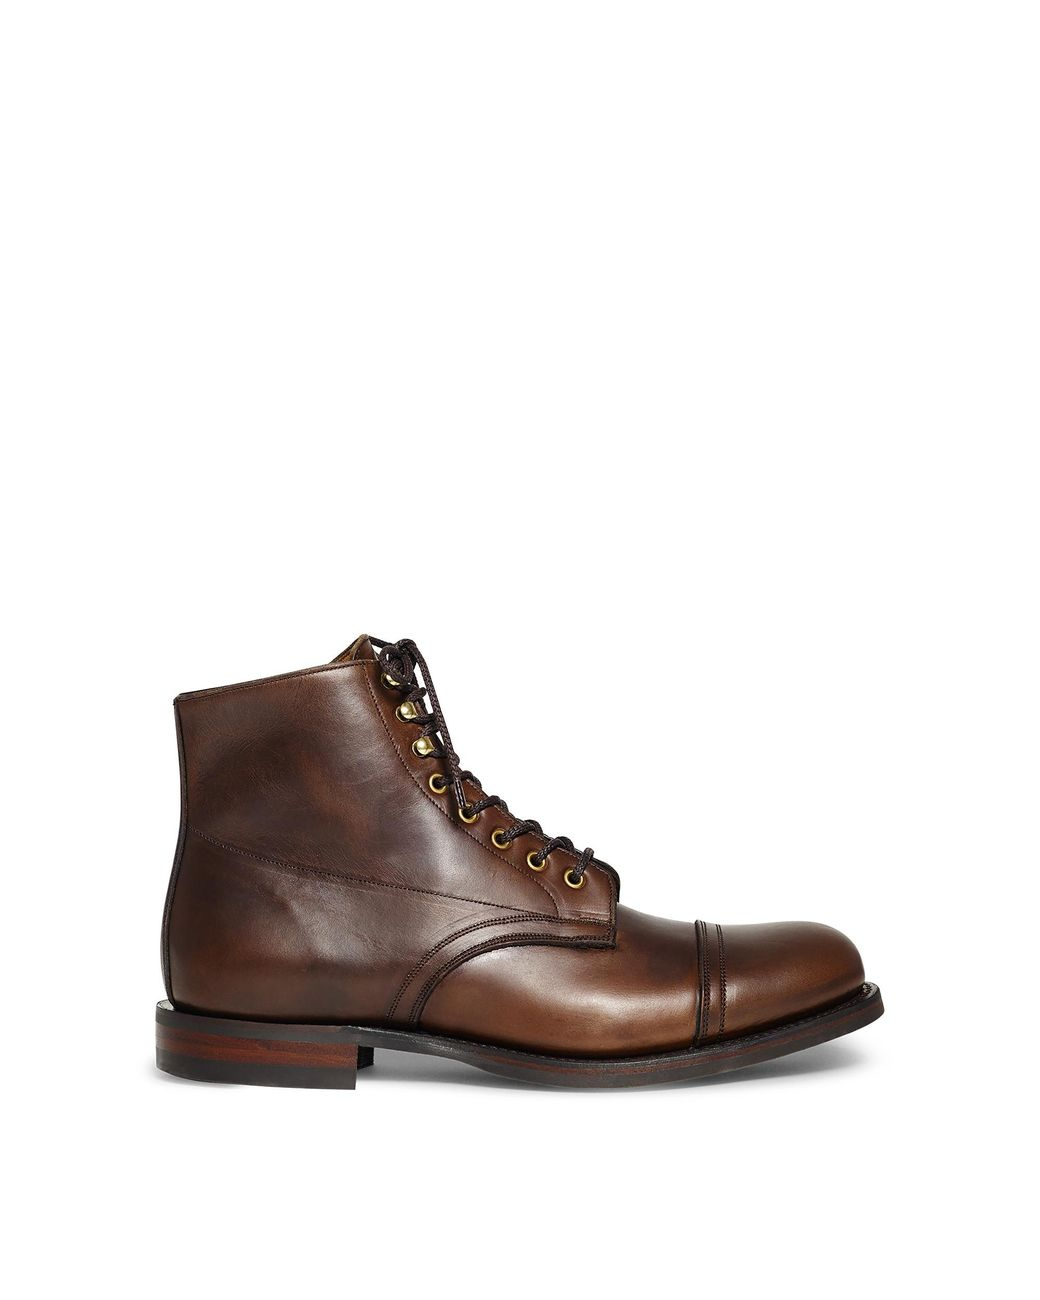 RRL Livingstone Leather Boot in Tan